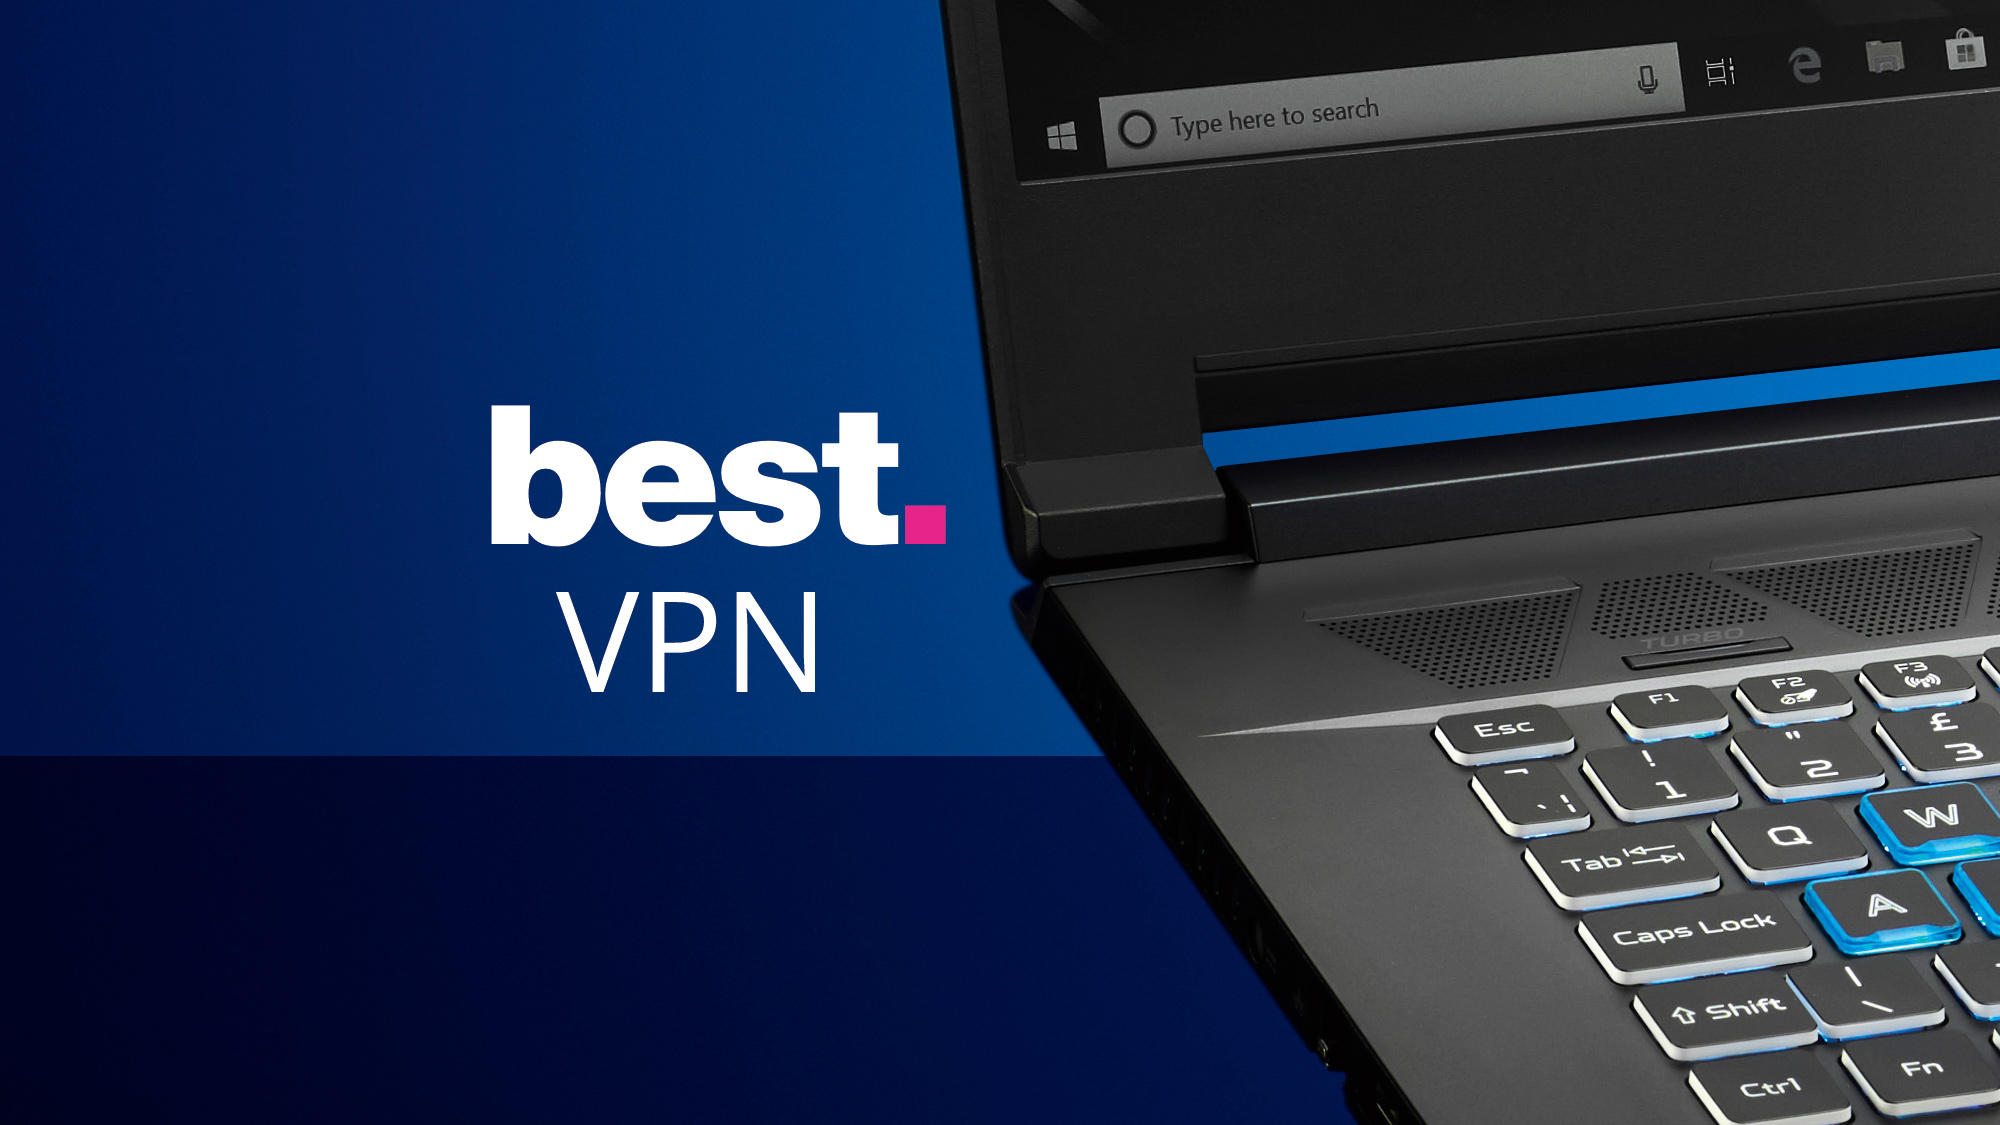 VPN On Your IPad - Gizmos & Gadgets